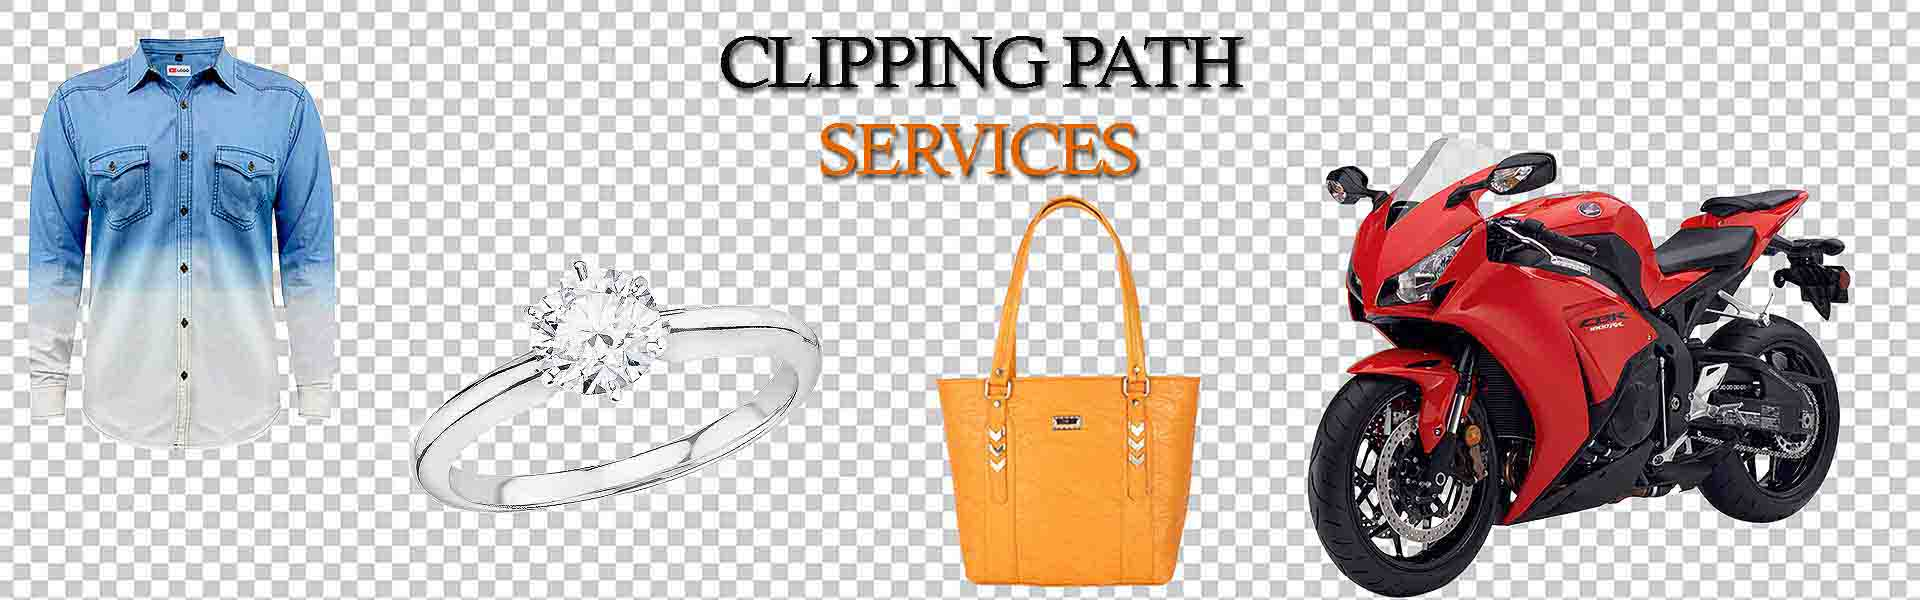 Clipping_path_photo_edit_banner